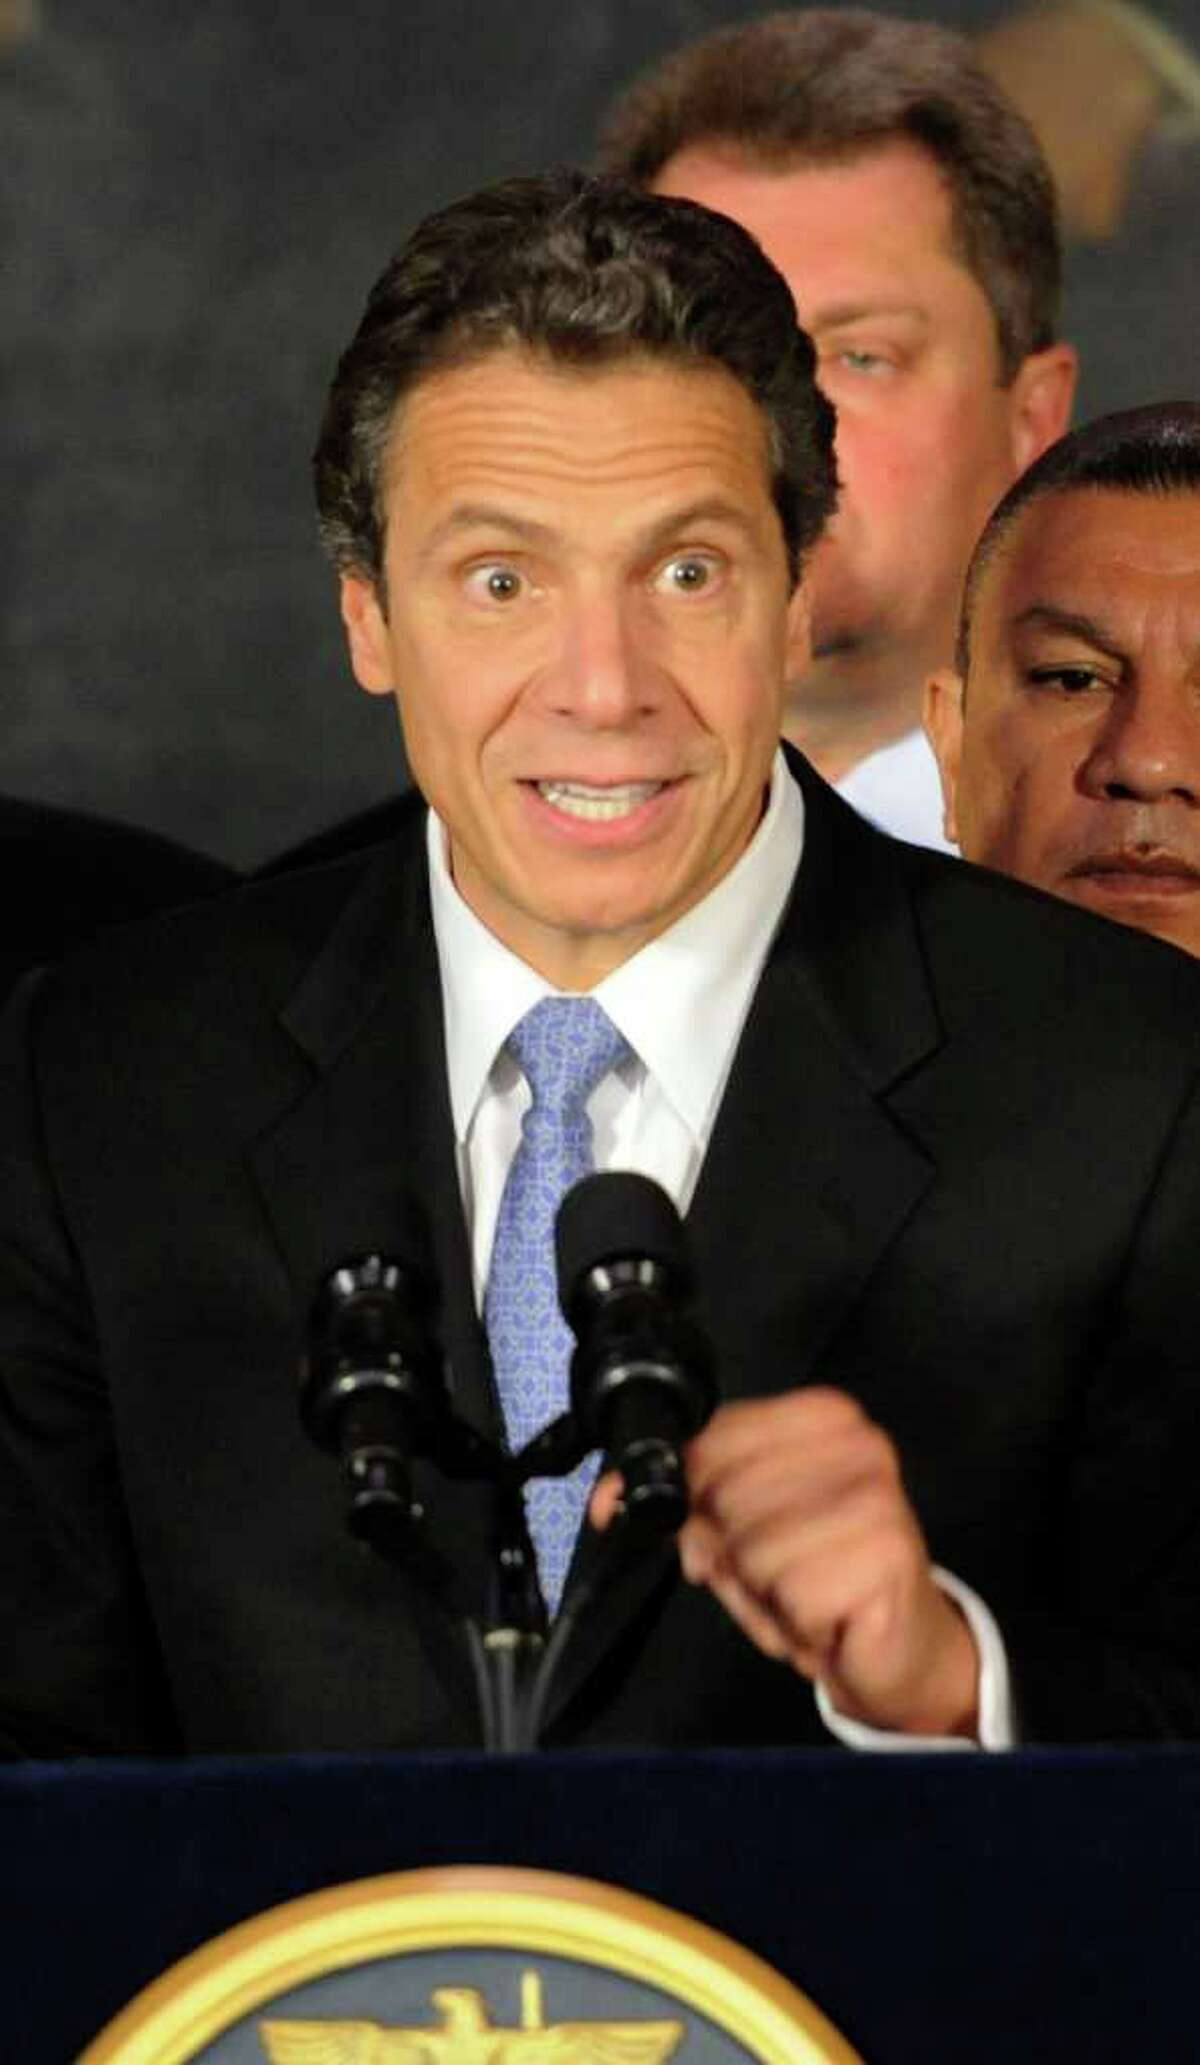 Governor Andrew Cuomo is animated in his response to questions by the media on various subjects after signing an Executive Order that will ensure that state government services are accessible to all regardless of English language ability. (Skip Dickstein / Times Union)